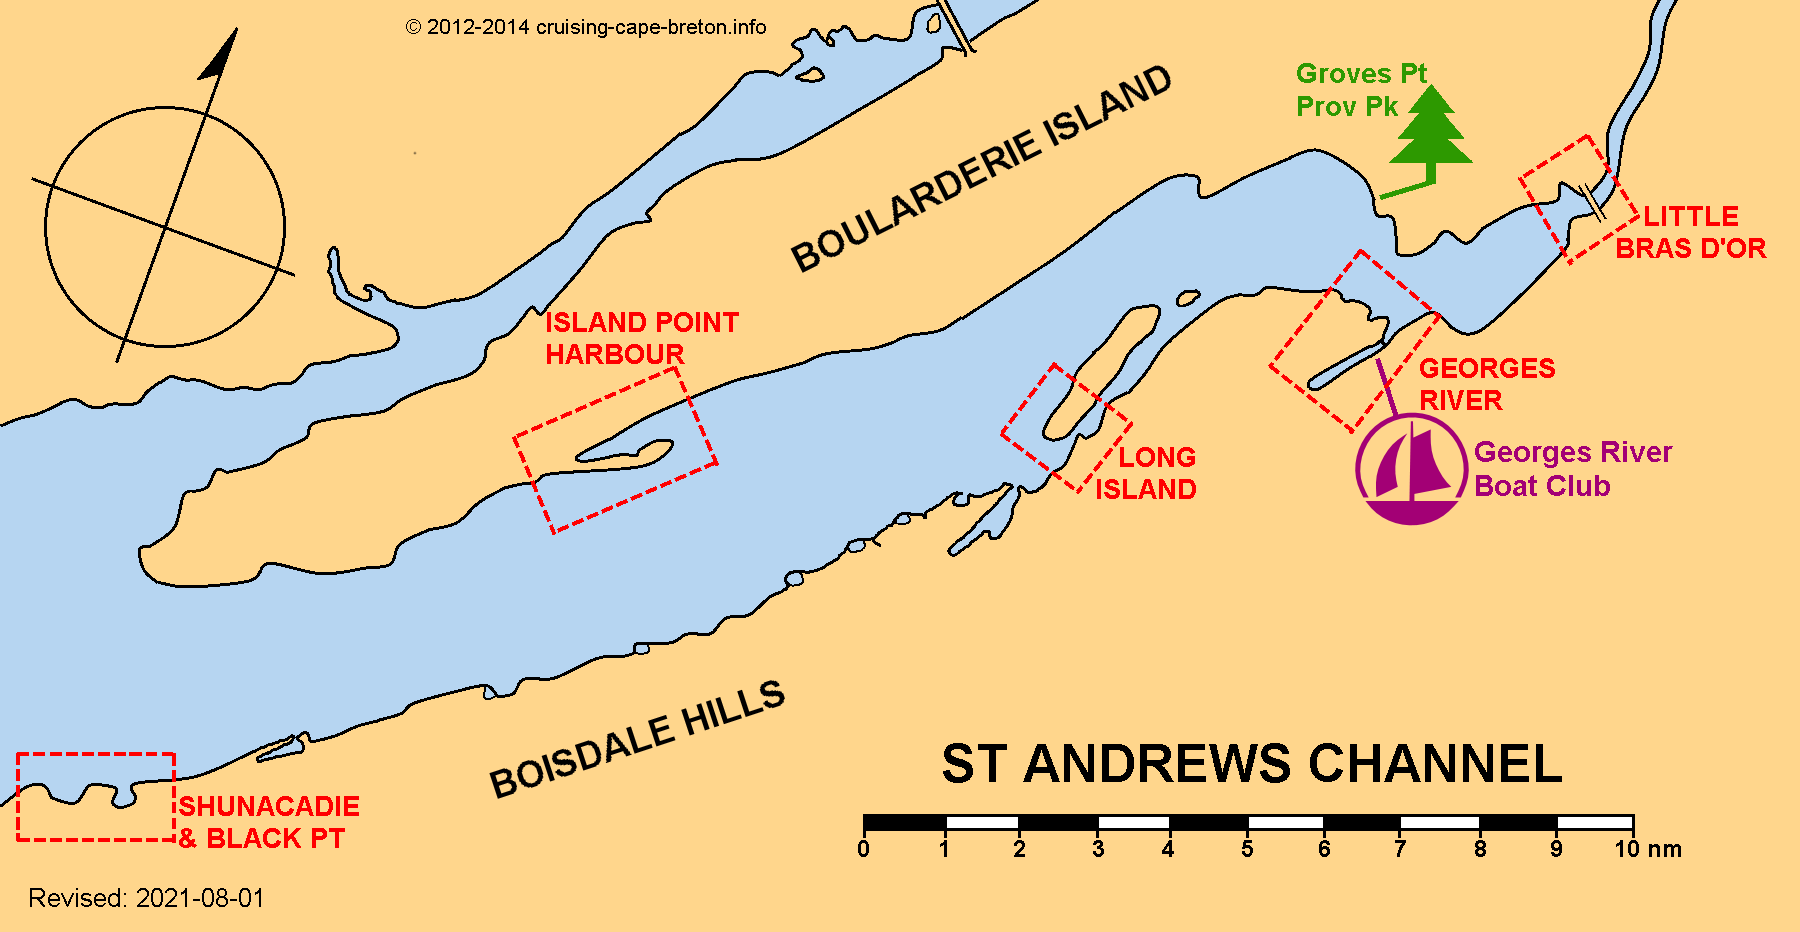 Key Chart to St Andrews Channel